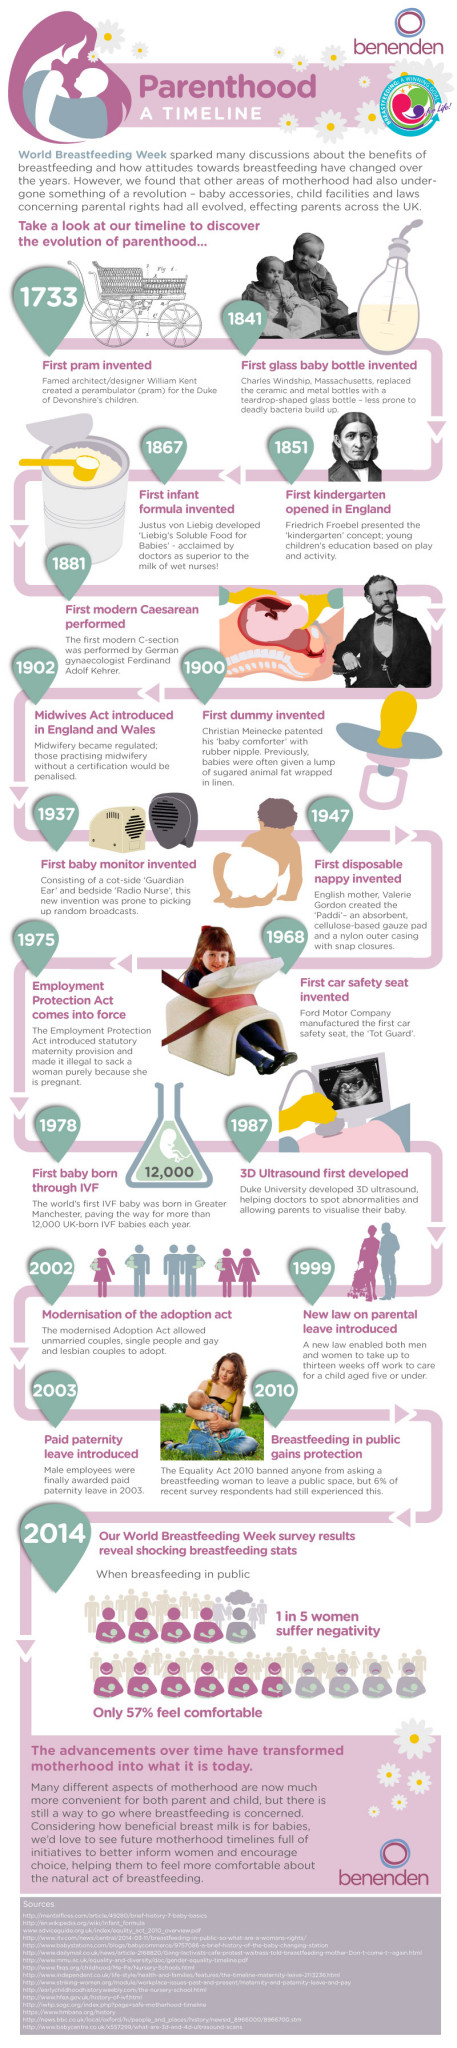 Motherhood_Infographic_benenden